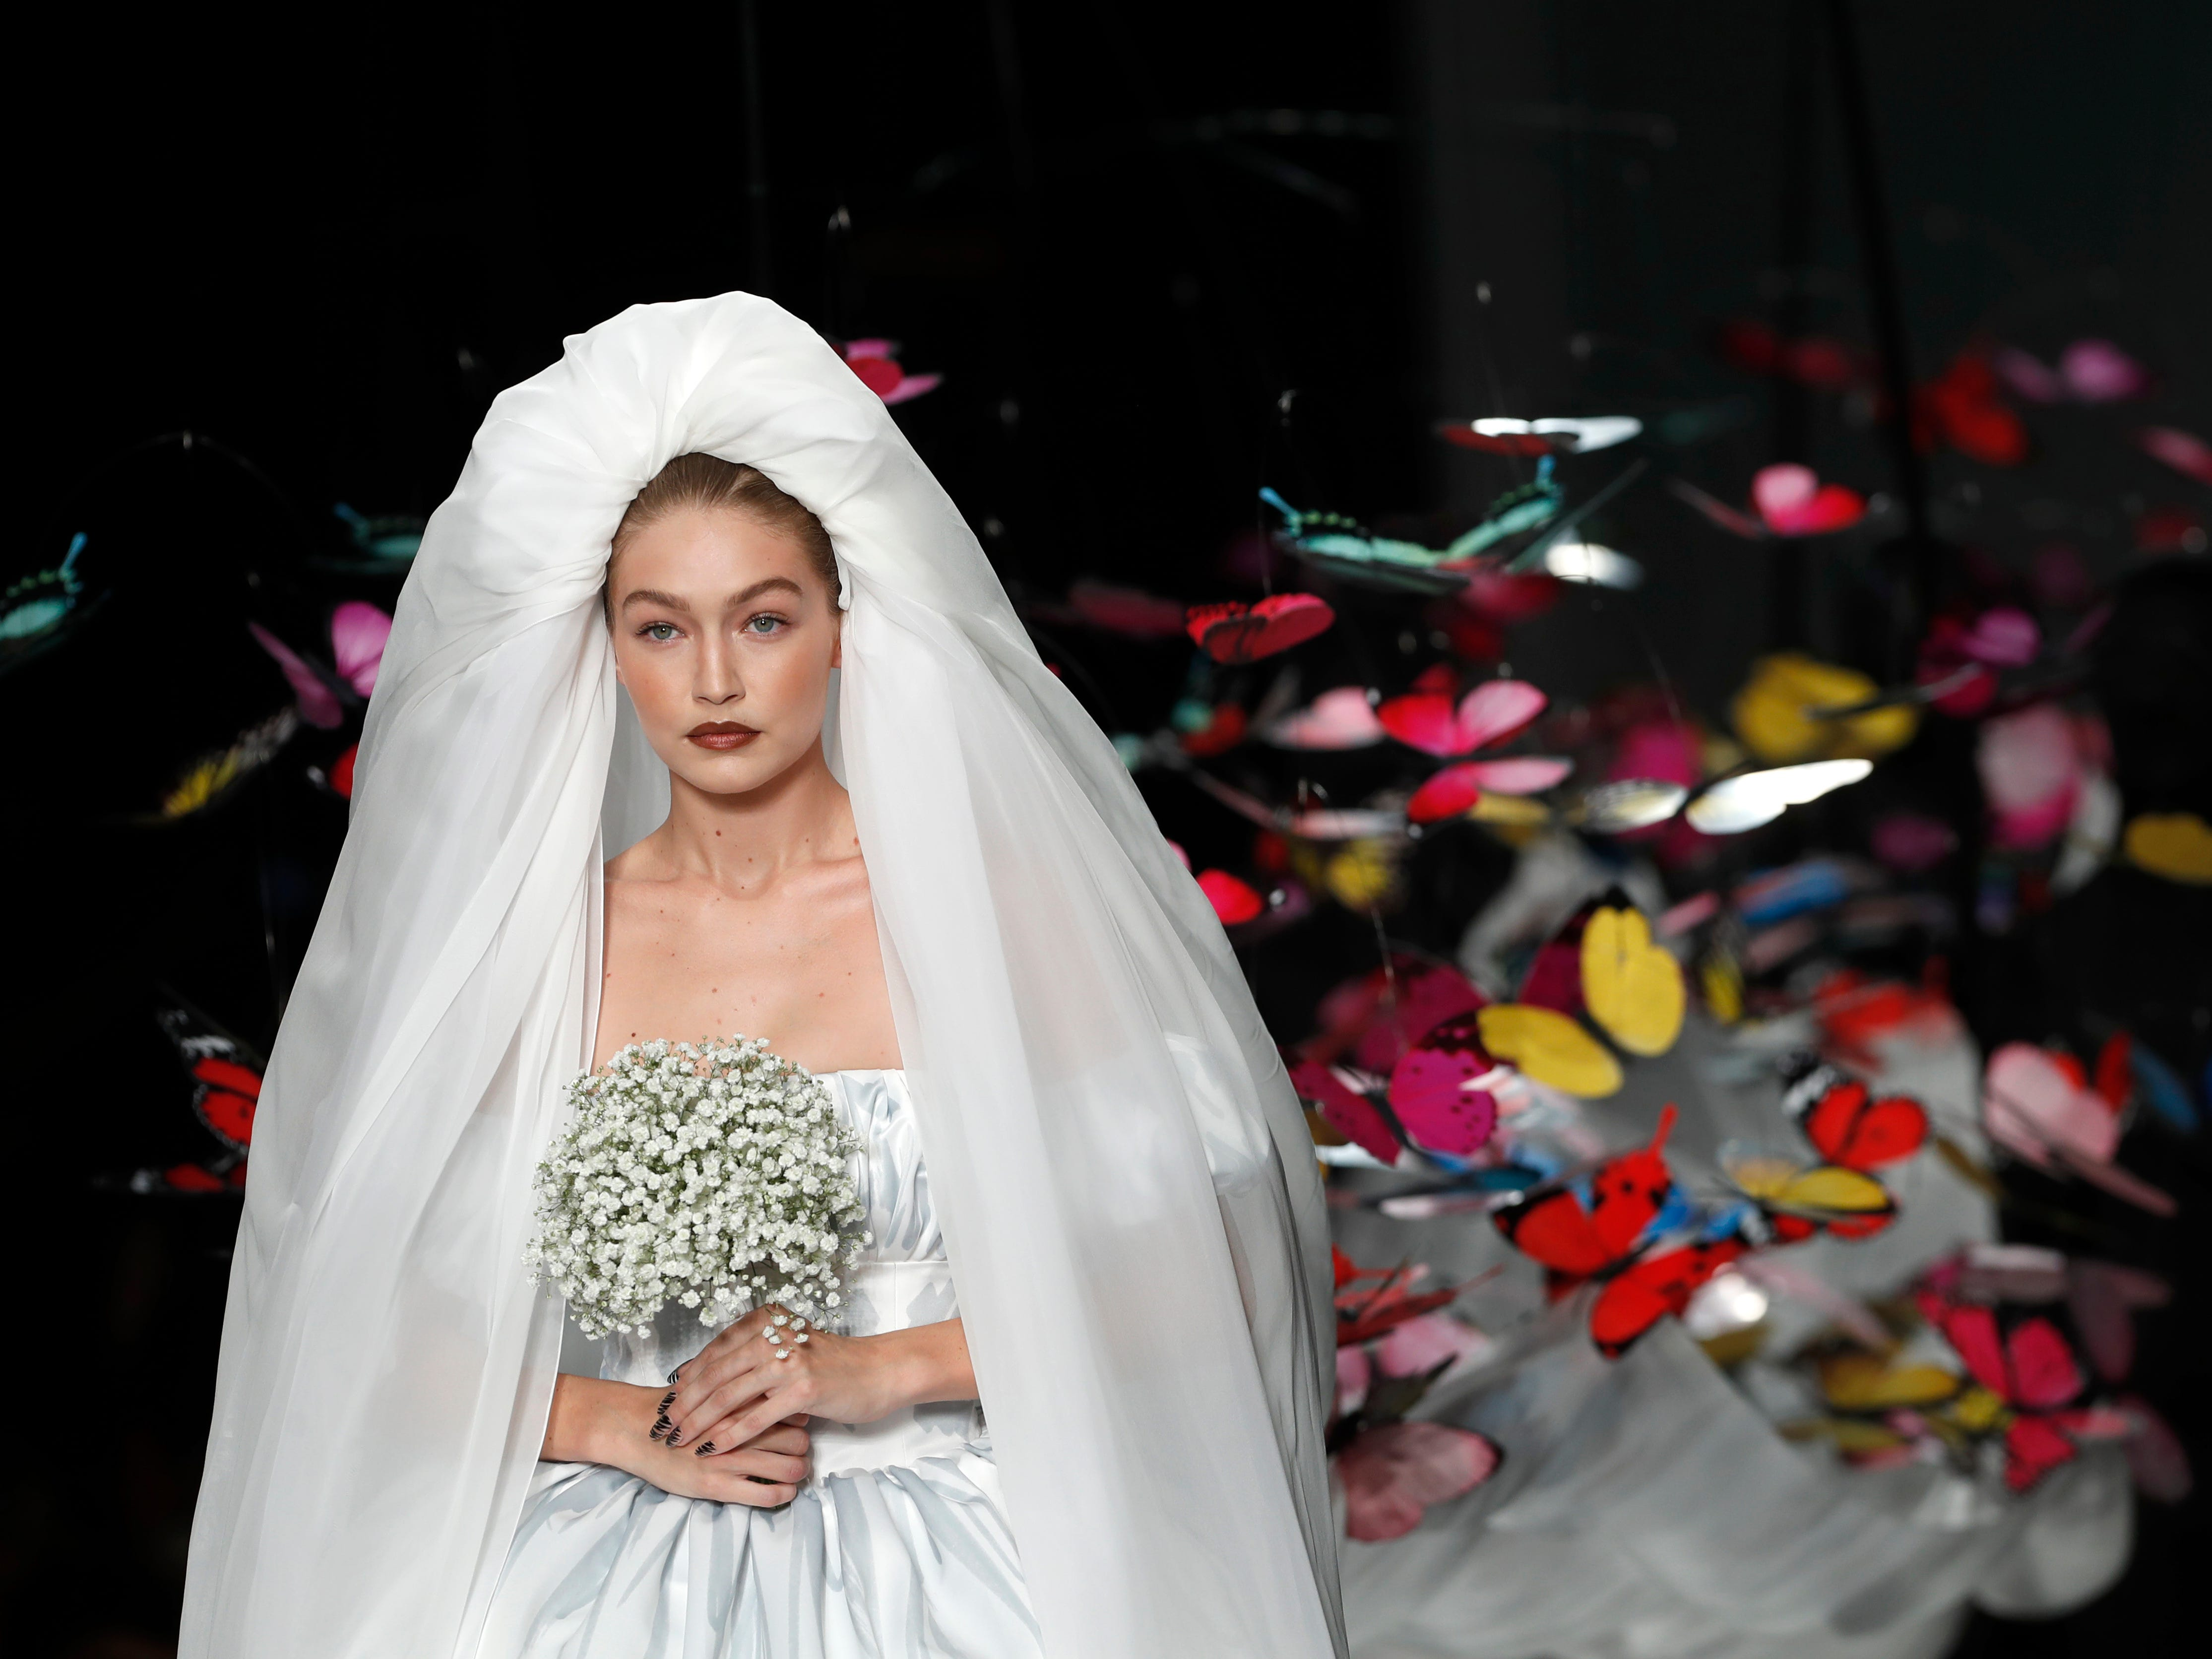 Model Gigi Hadid wears a creation as part of the Moschino women's 2019 spring-summer collection, unveiled during Fashion Week in Milan, Italy, Thursday, Sept. 20, 2018.